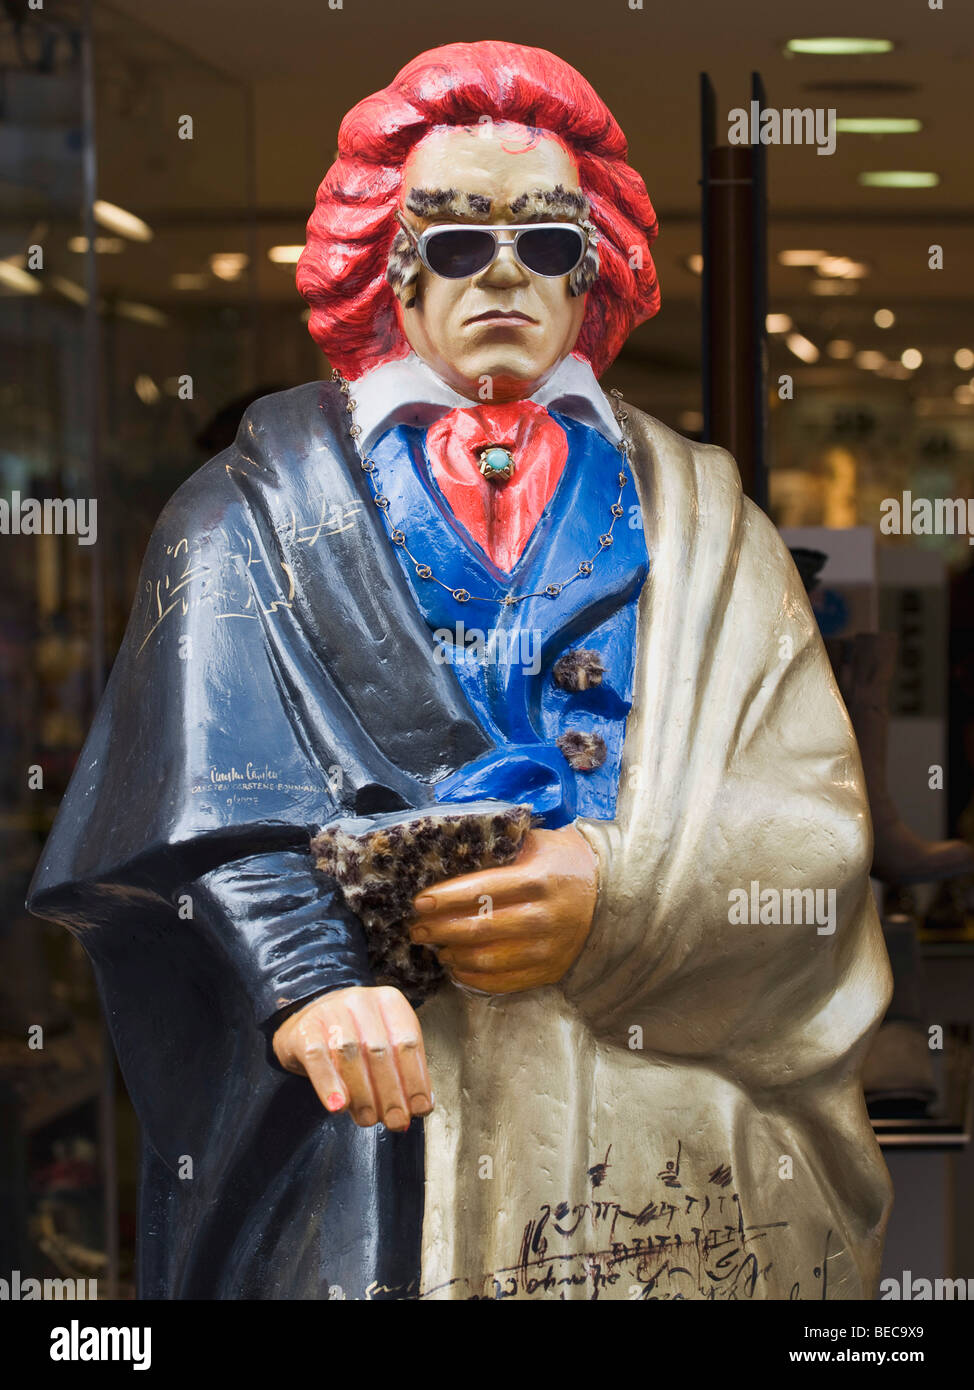 Beethoven statue with red hair, sunglasses and colourful clothing in front of a retail outlet Stock Photo